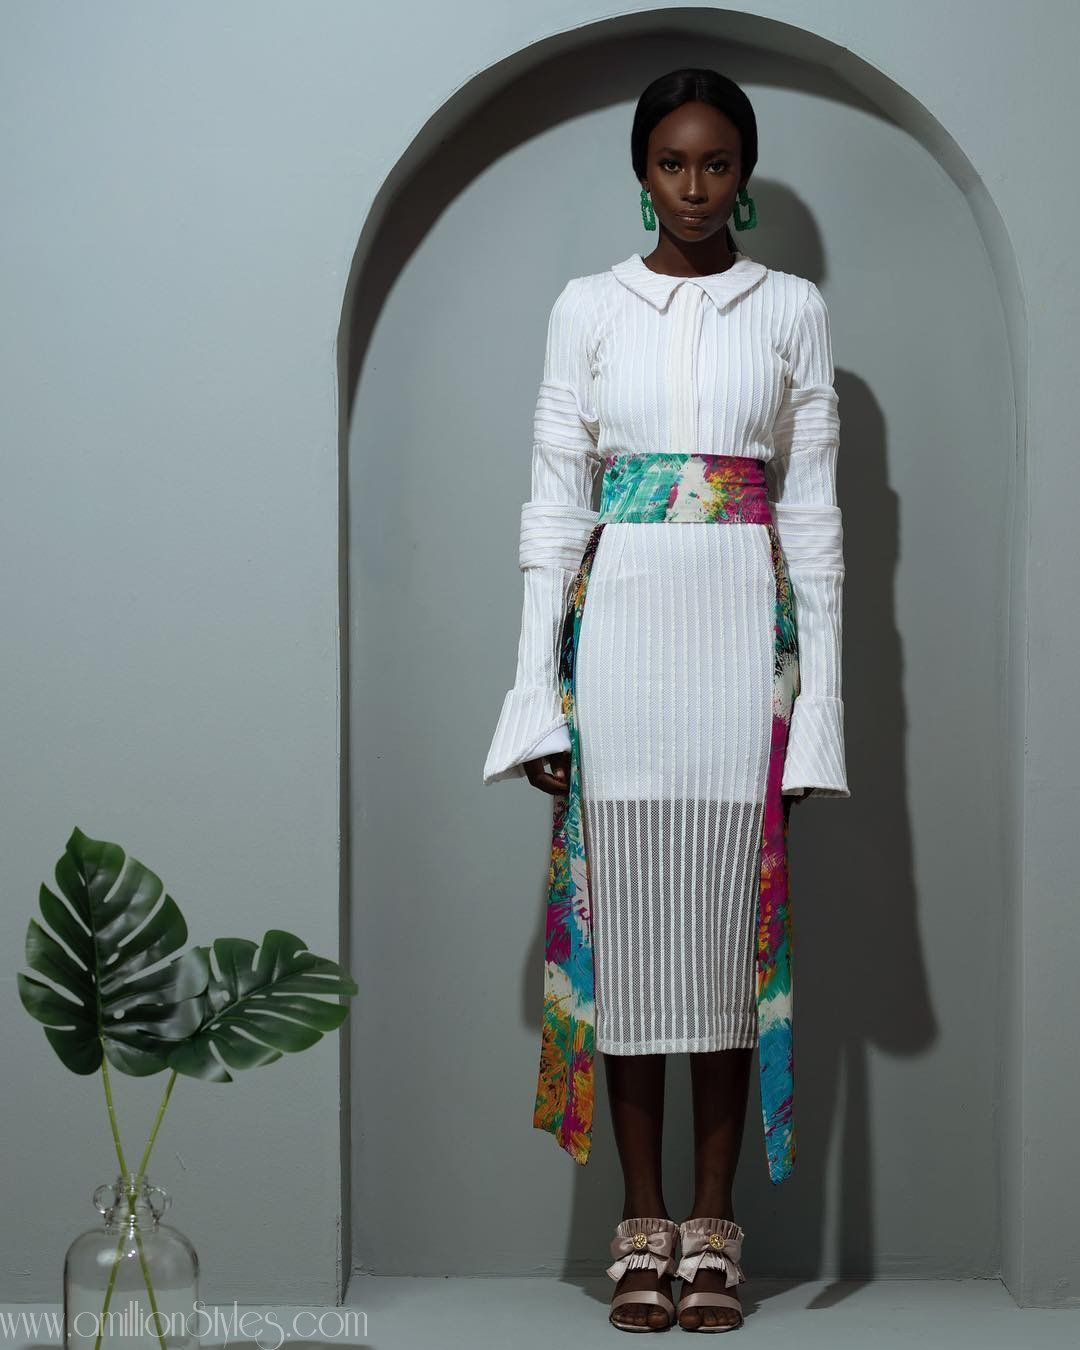 Knanfe Showcases New Collection For The Free Spirited Woman